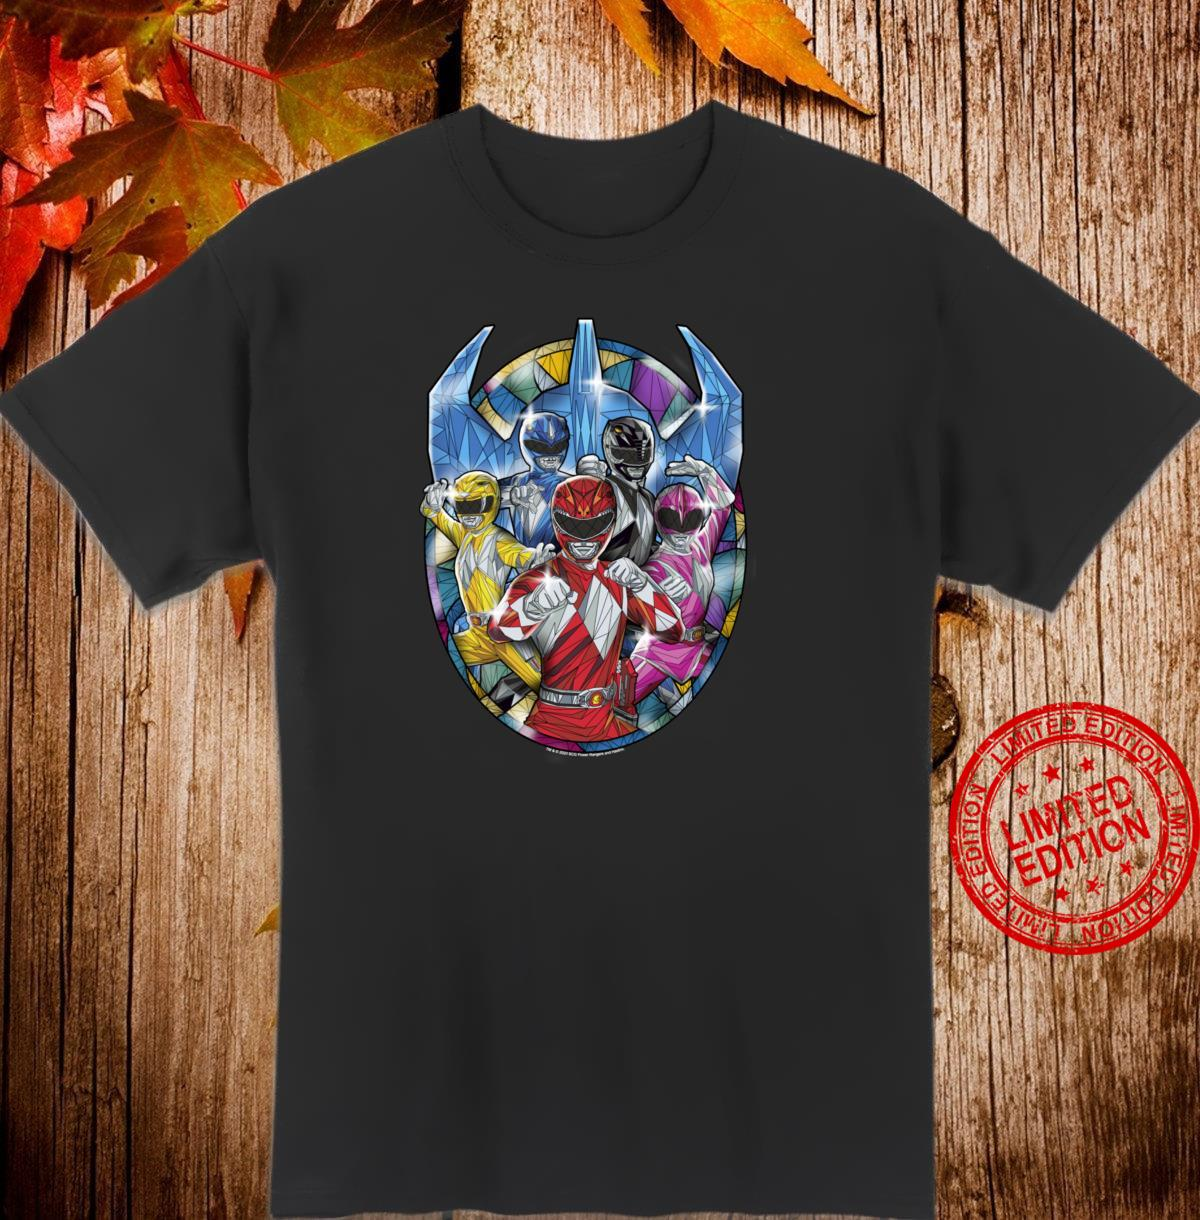 Power Rangers Stained Glass Shirt